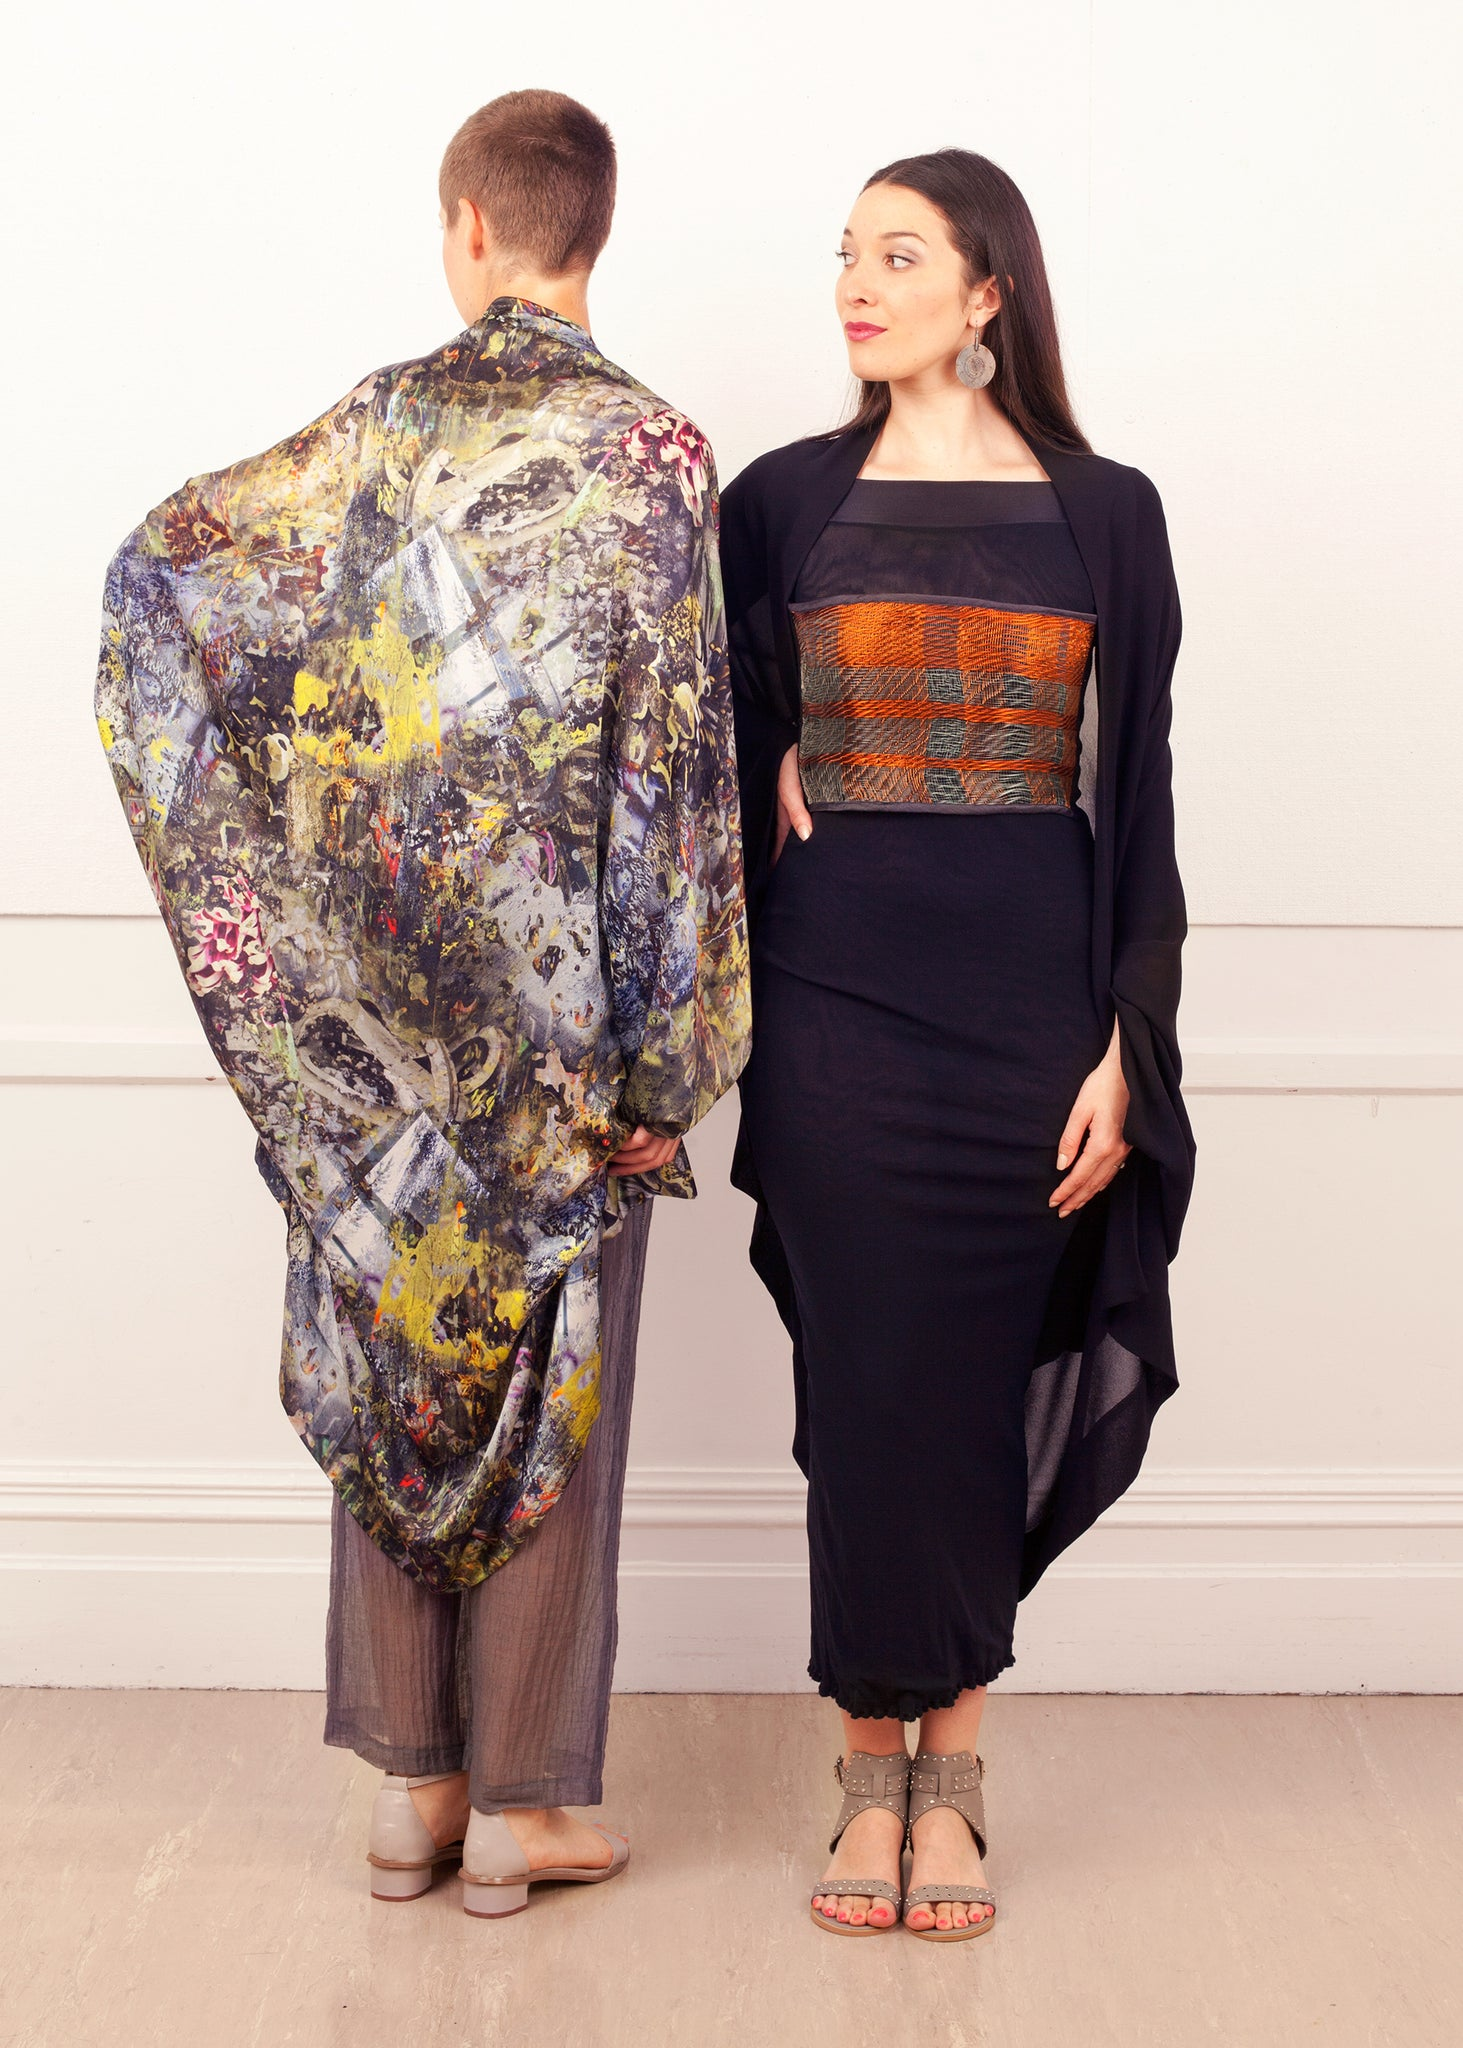 Fraser Crowe Featherweight Kimono #lesslandfill Lease ethical fashion, sustainable fashion, designer clothes, plus size clothing, textile print clothing, luxury online fashion, slow fashion